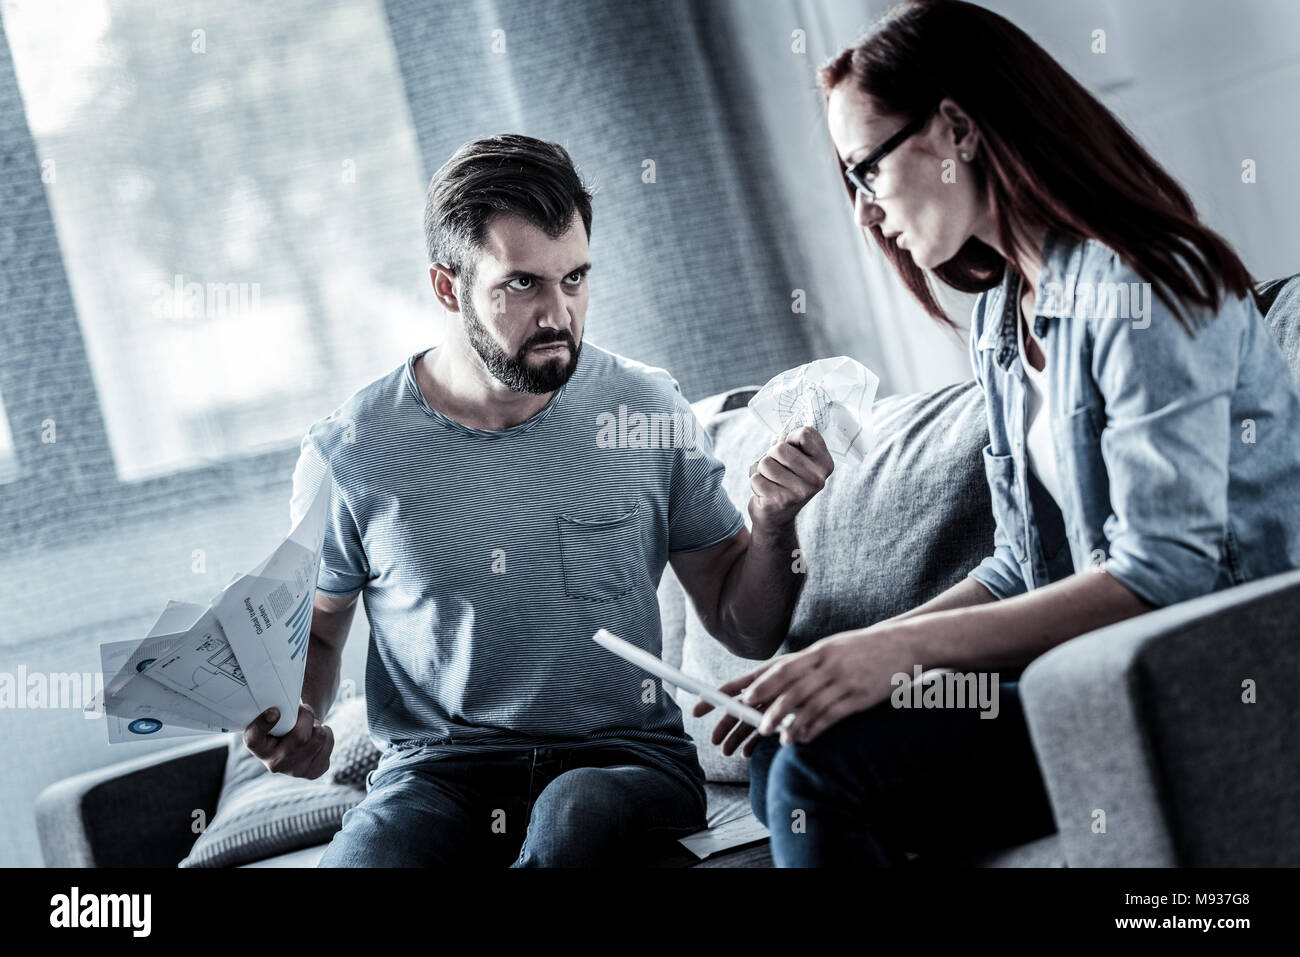 Angry unhappy man holding documents and having bad mood. - Stock Image